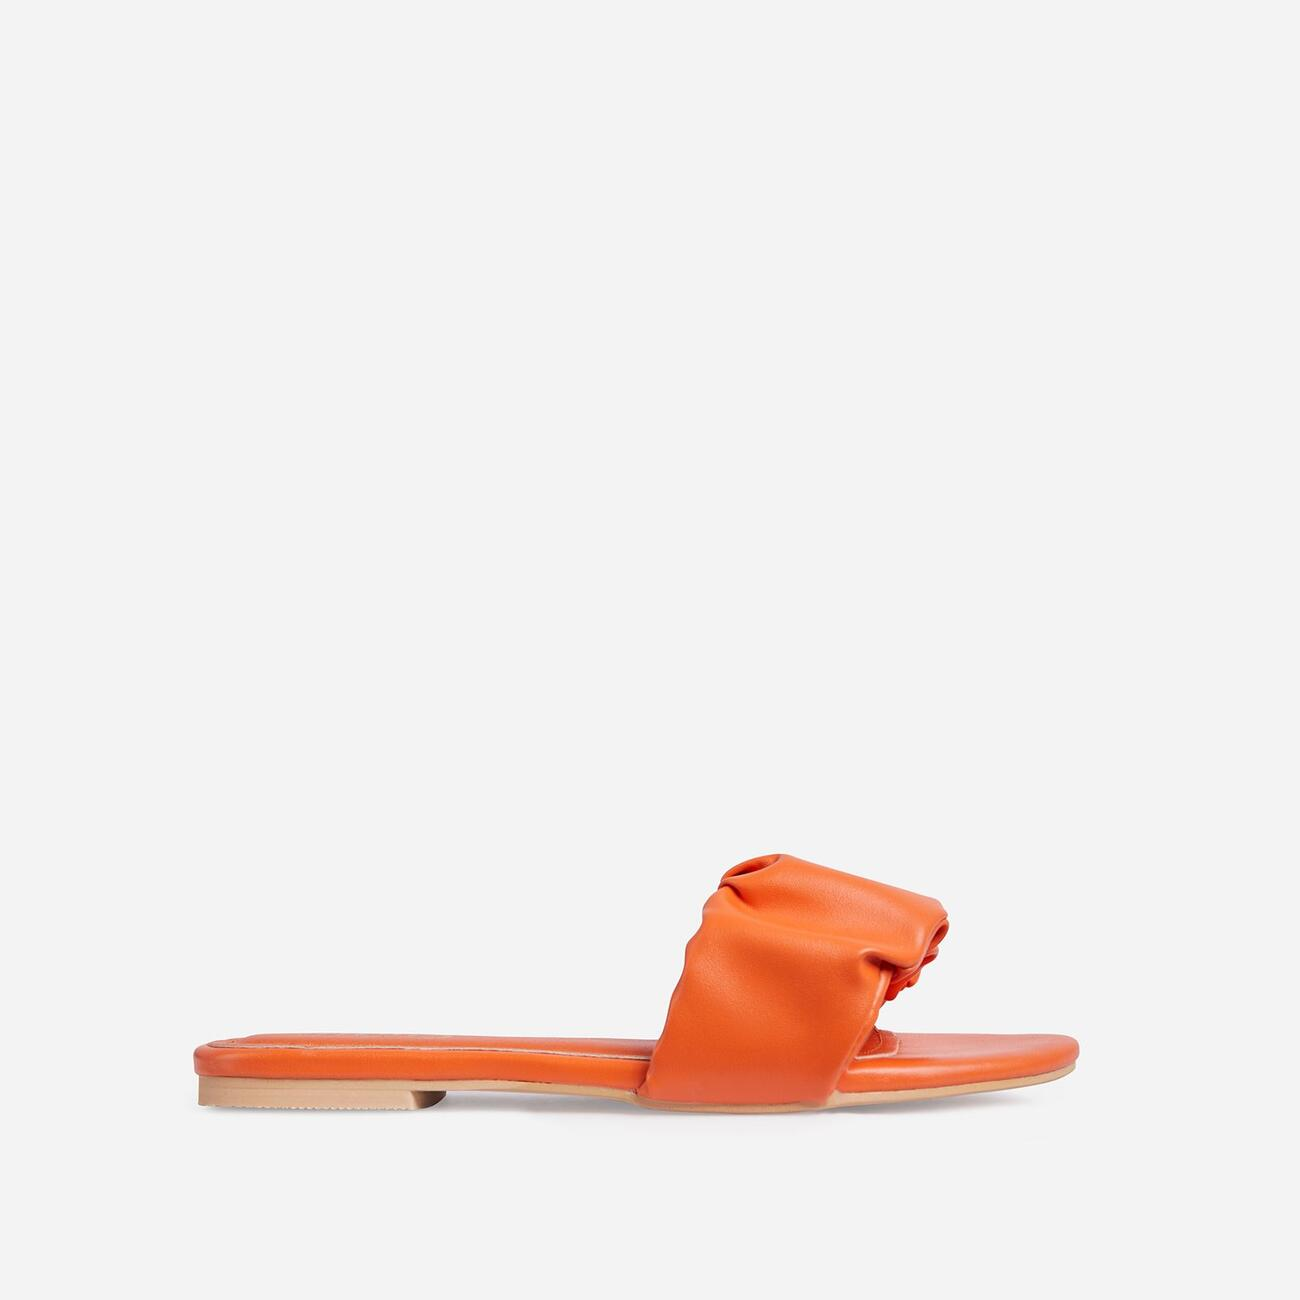 Tender Ruched Flat Slider Sandal In Orange Faux Leather Image 1